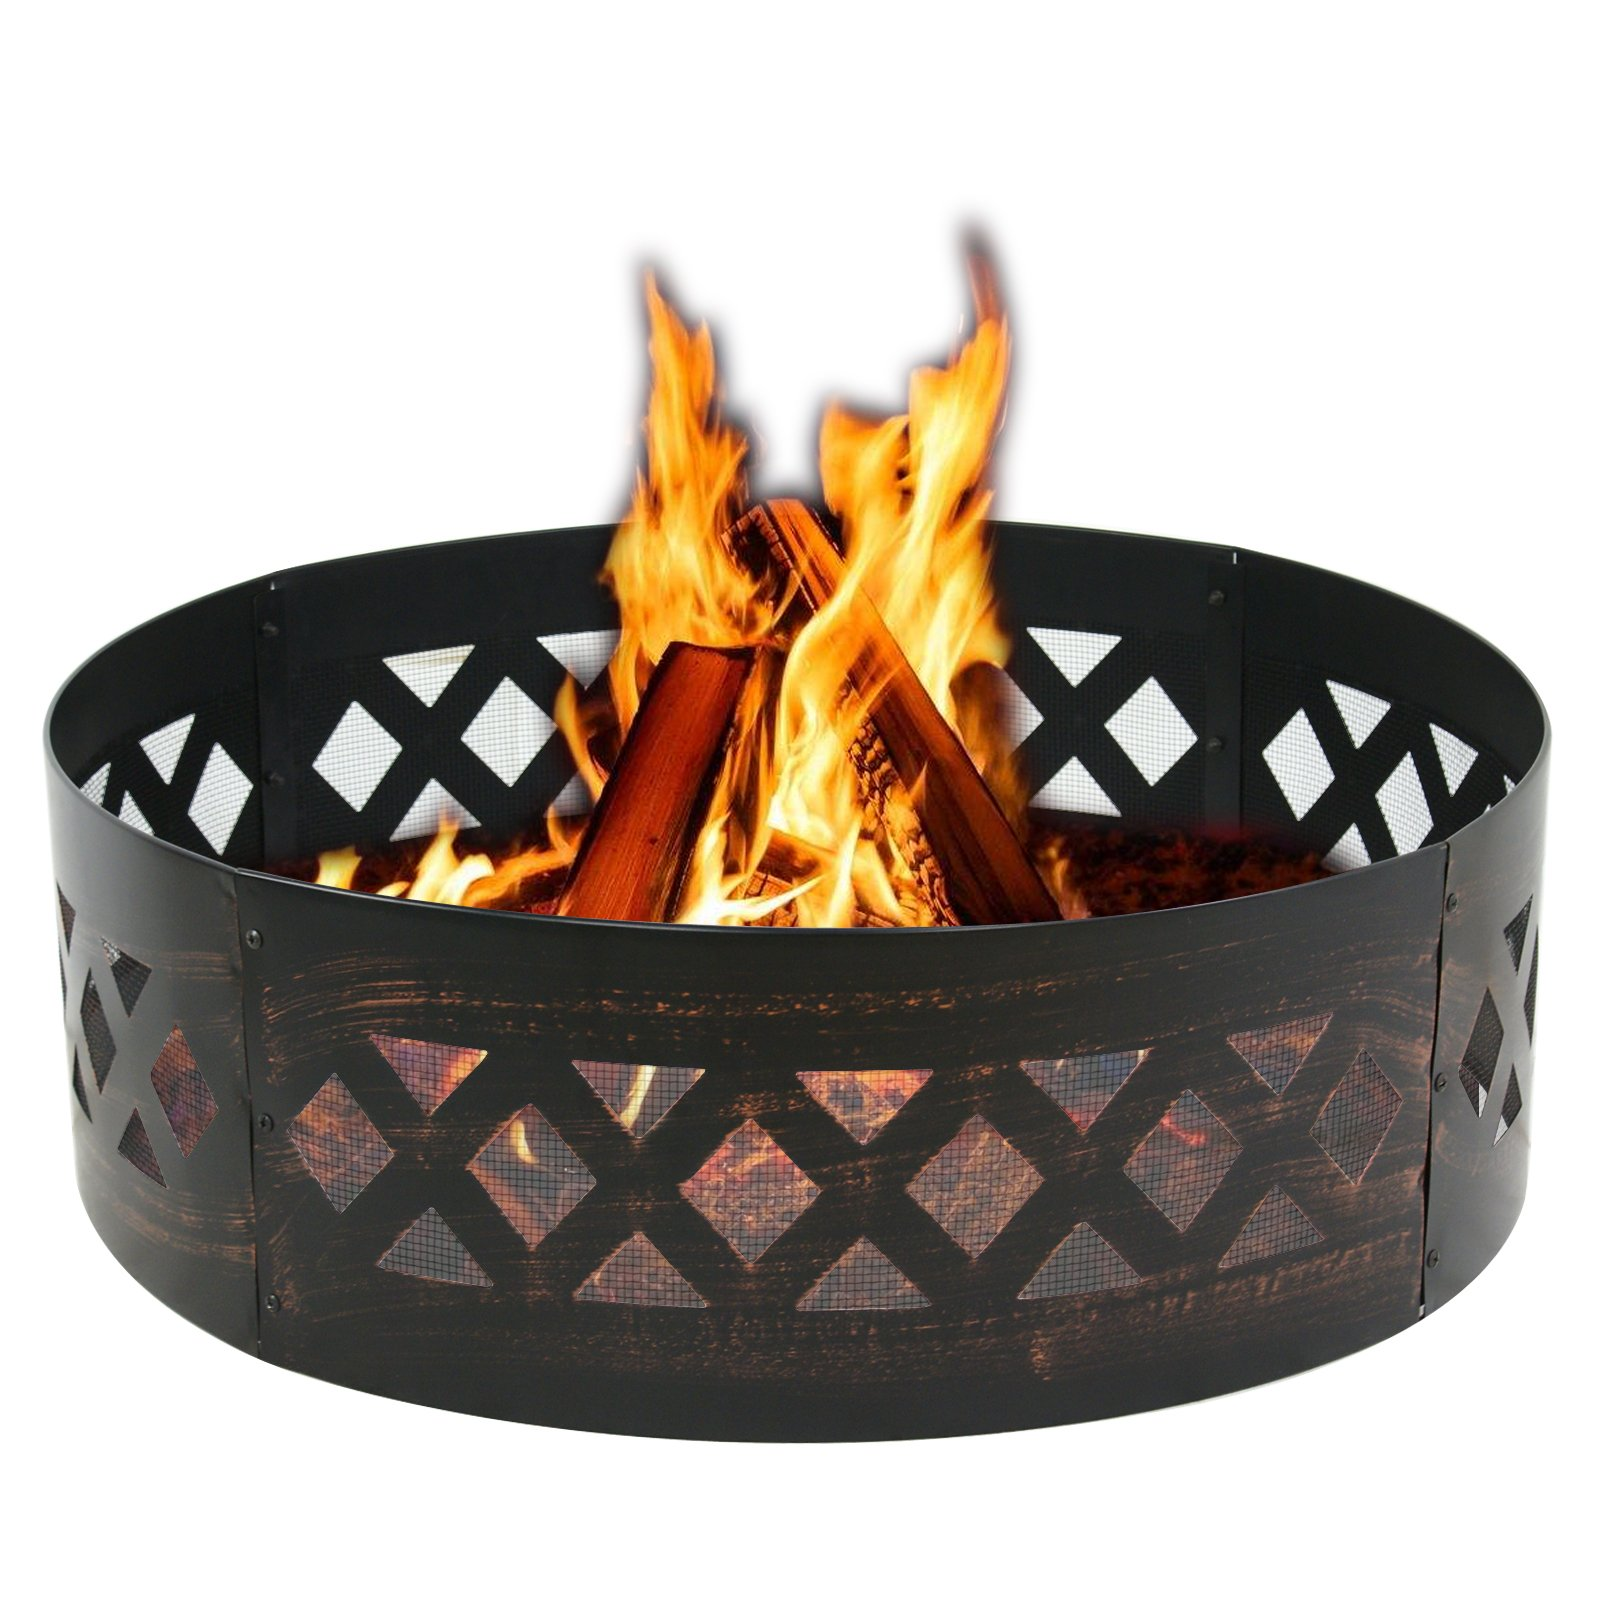 LEMY 37'' Heavy Duty Fire Ring Wilderness Fire Pit Ring Campfire Ring Steel Patio Camping Outdoors by LEMY (Image #1)